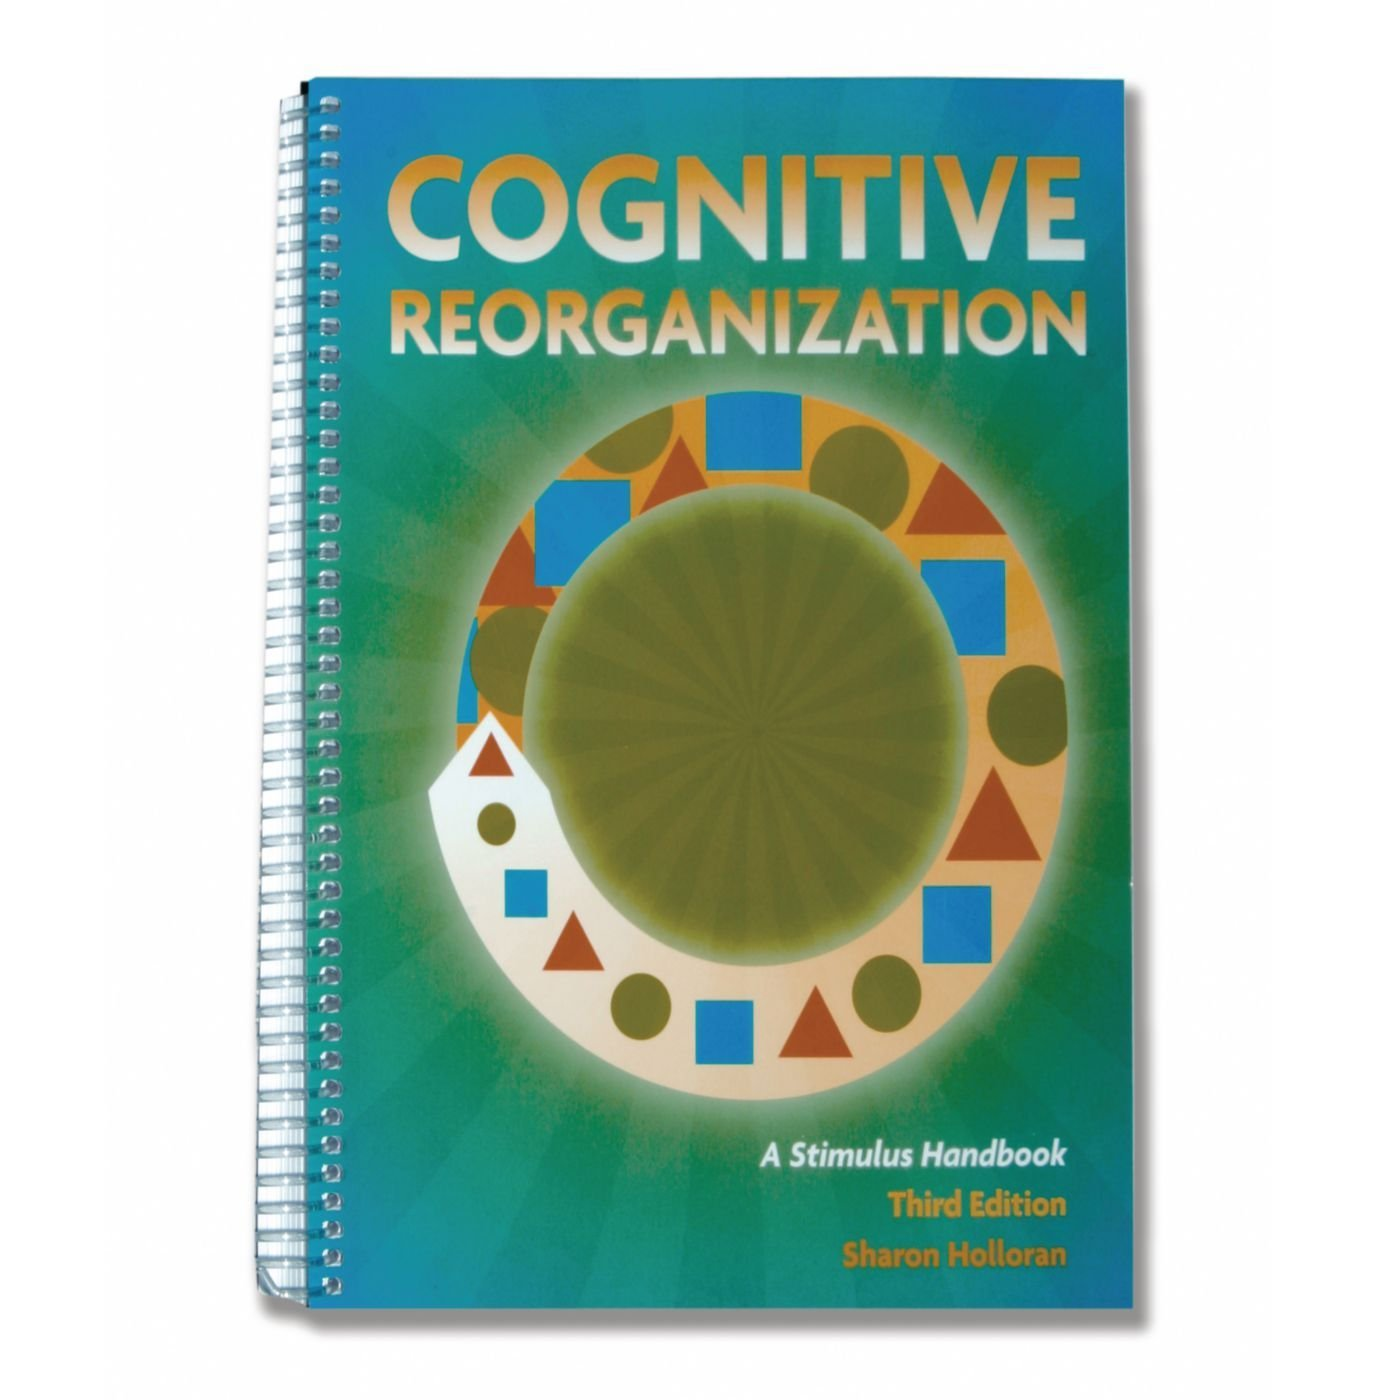 Cognitive Reorganization, 3rd Edition